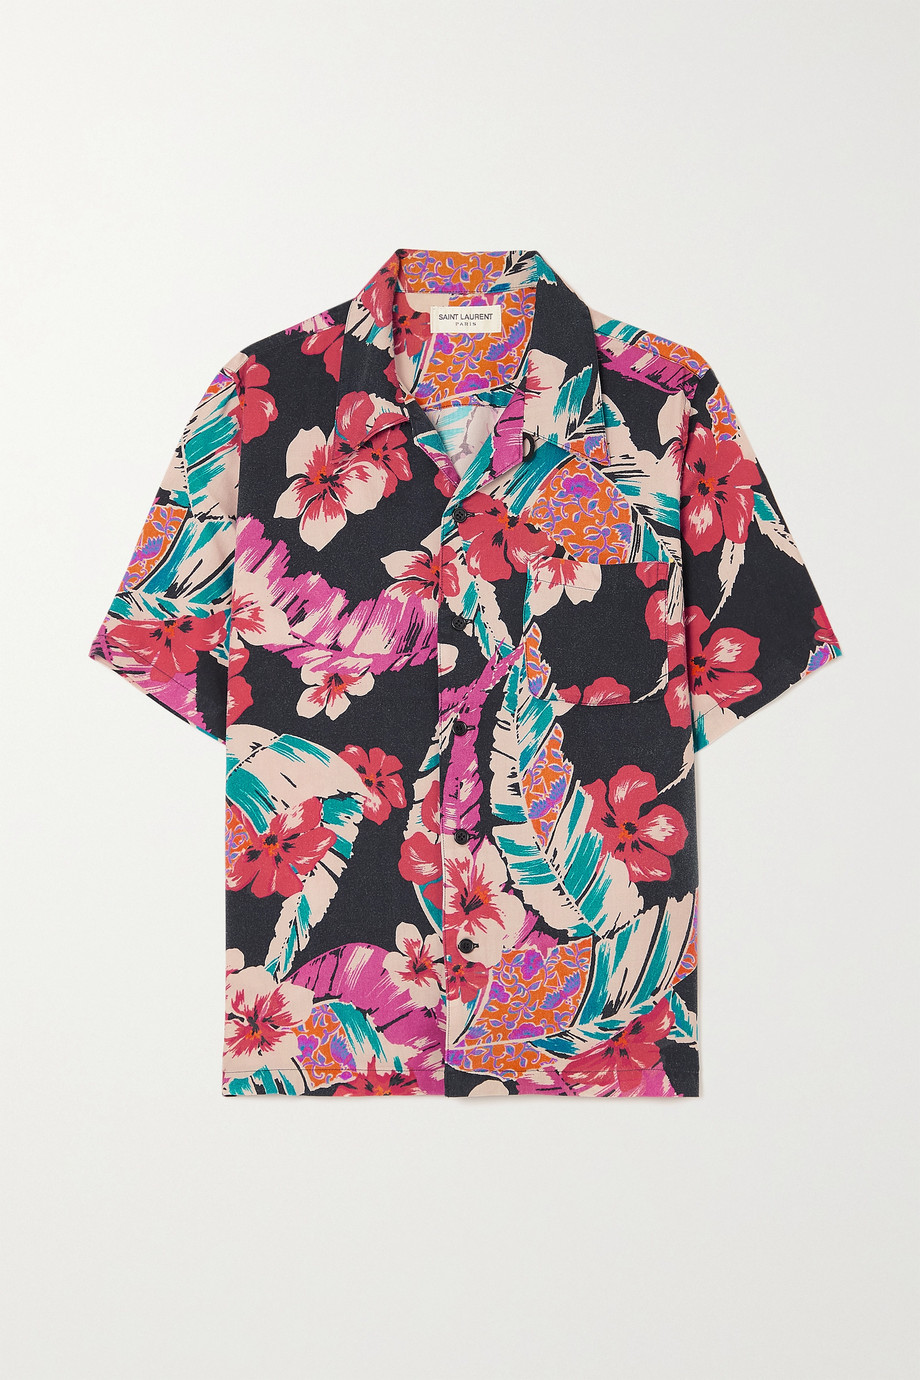 SAINT LAURENT Floral-print twill shirt